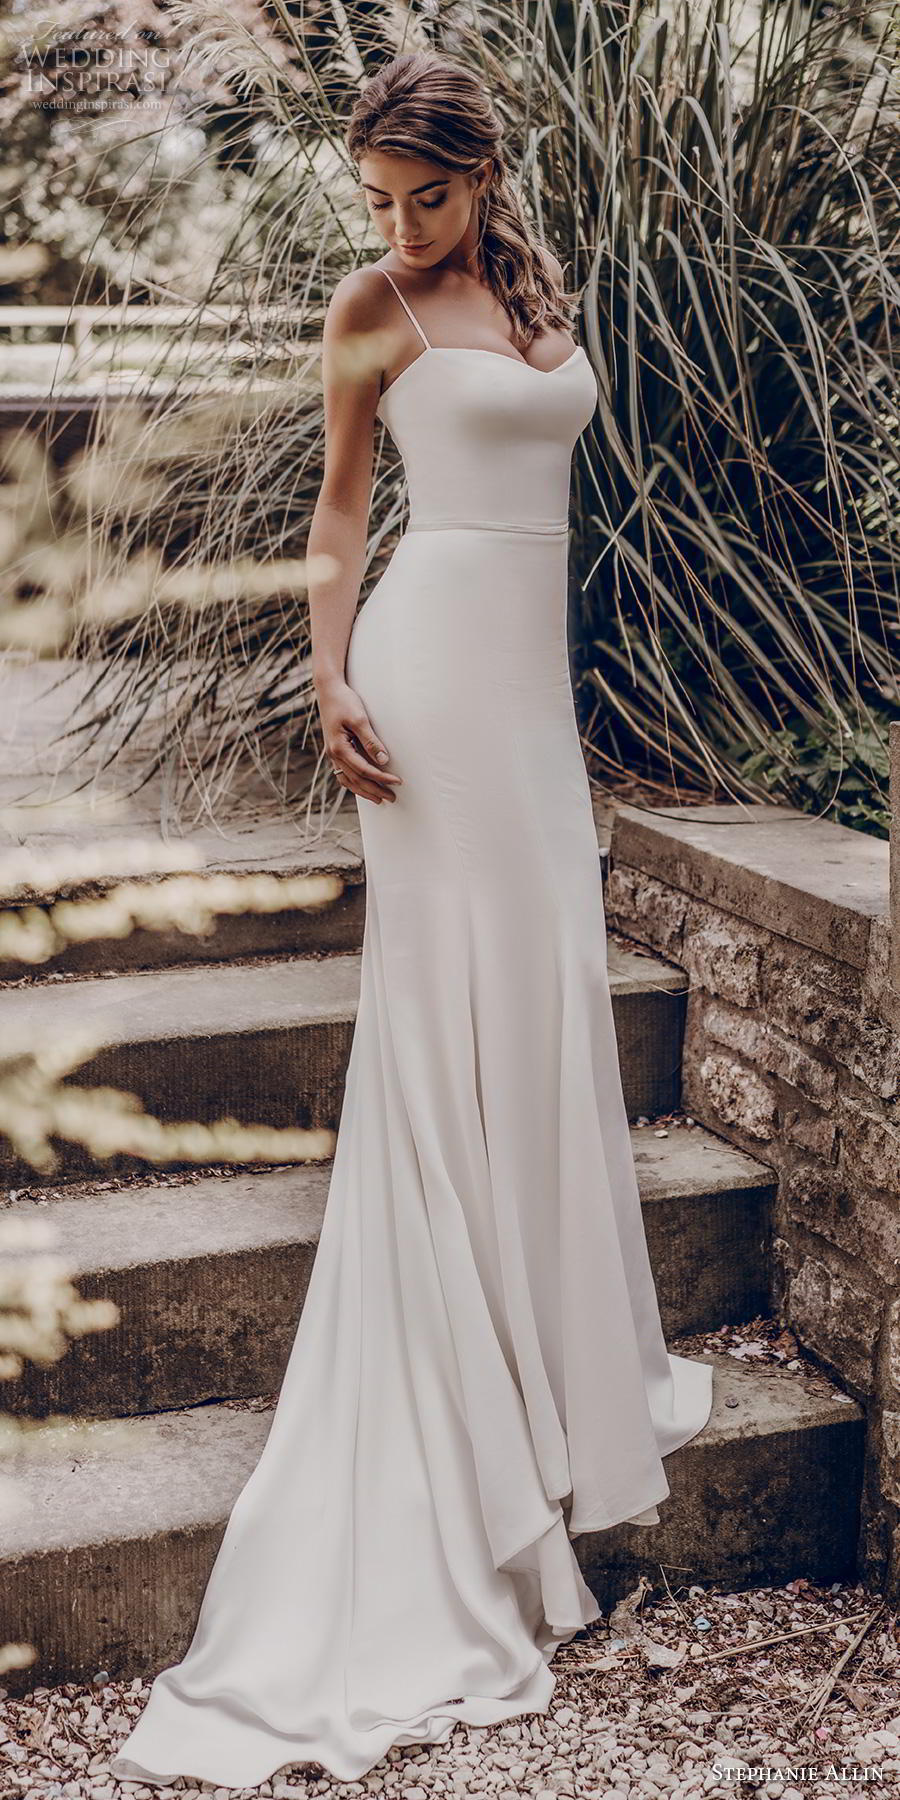 stephanie allin 2019 bridal sleeveless spaghetti strap sweetheart neckline simple minimalist clean elegant sheath wedding dress mid back chapel train (2) mv